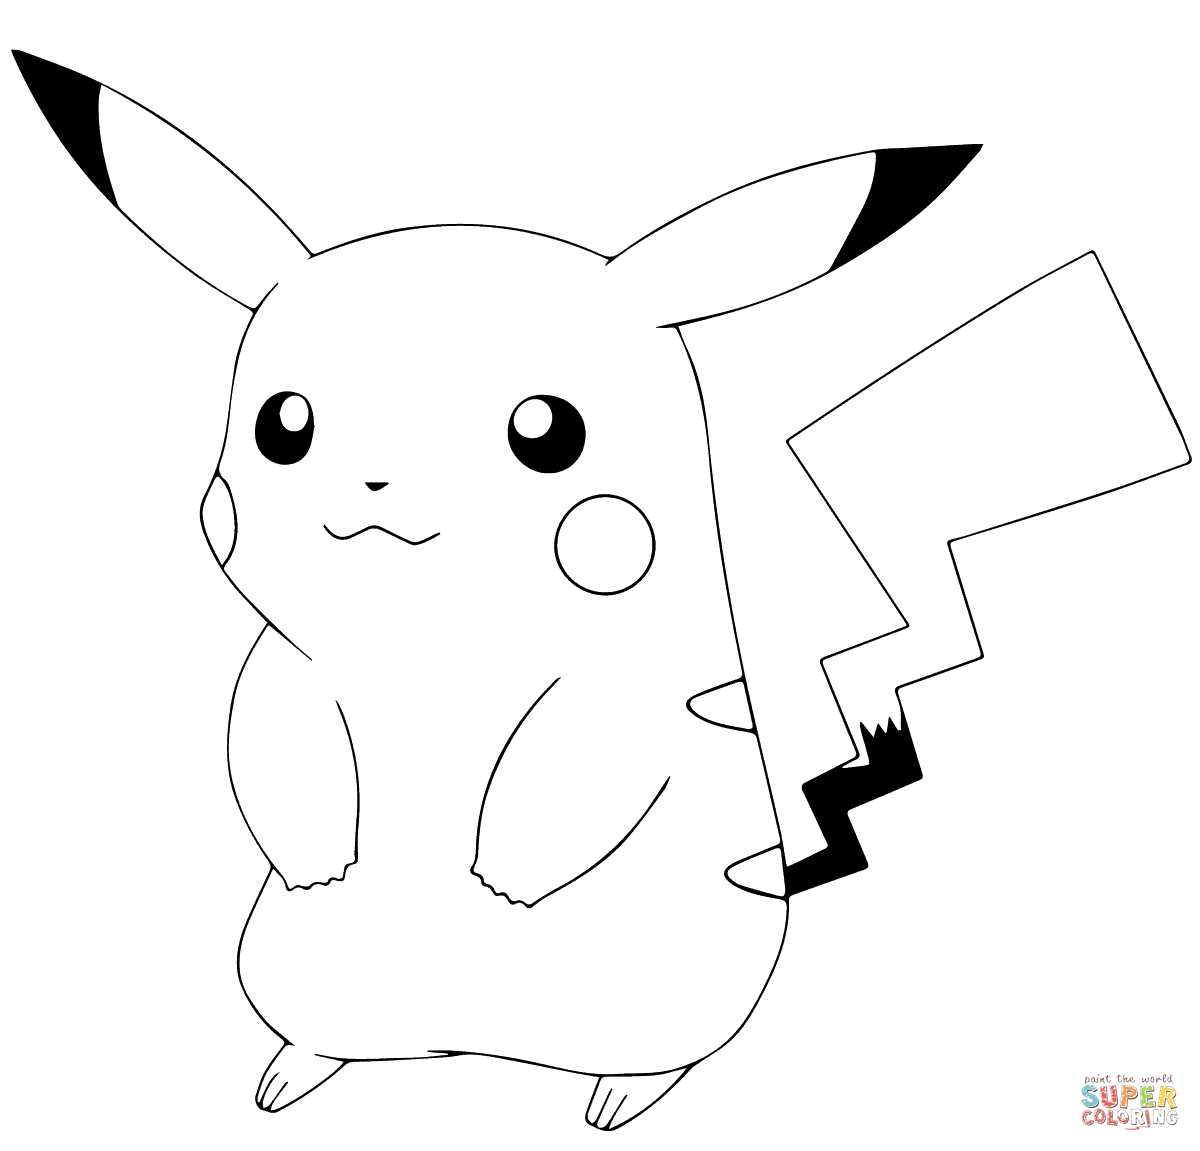 Free coloring pages pokemon - Image Result For Pokemon Go Coloring Pages